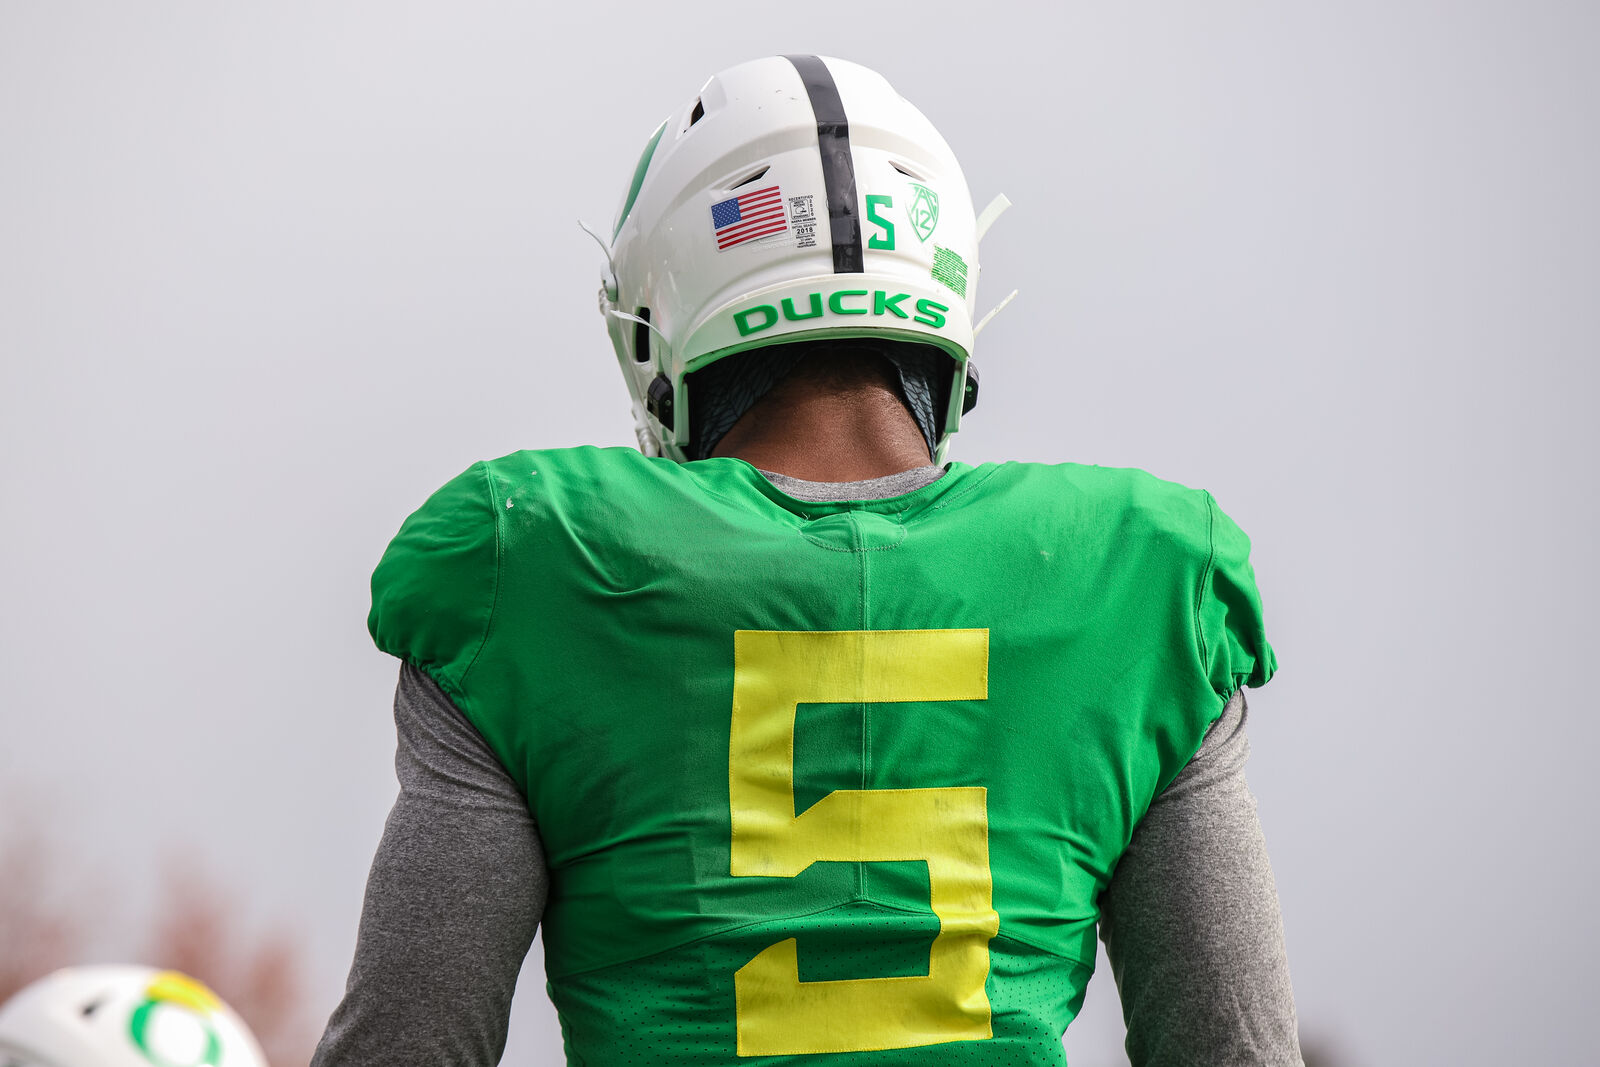 The Oregon Ducks practice for the Pac-12 season the week of October 19-23 - before COVID-19 brought practice to a halt. (Oregon Football)